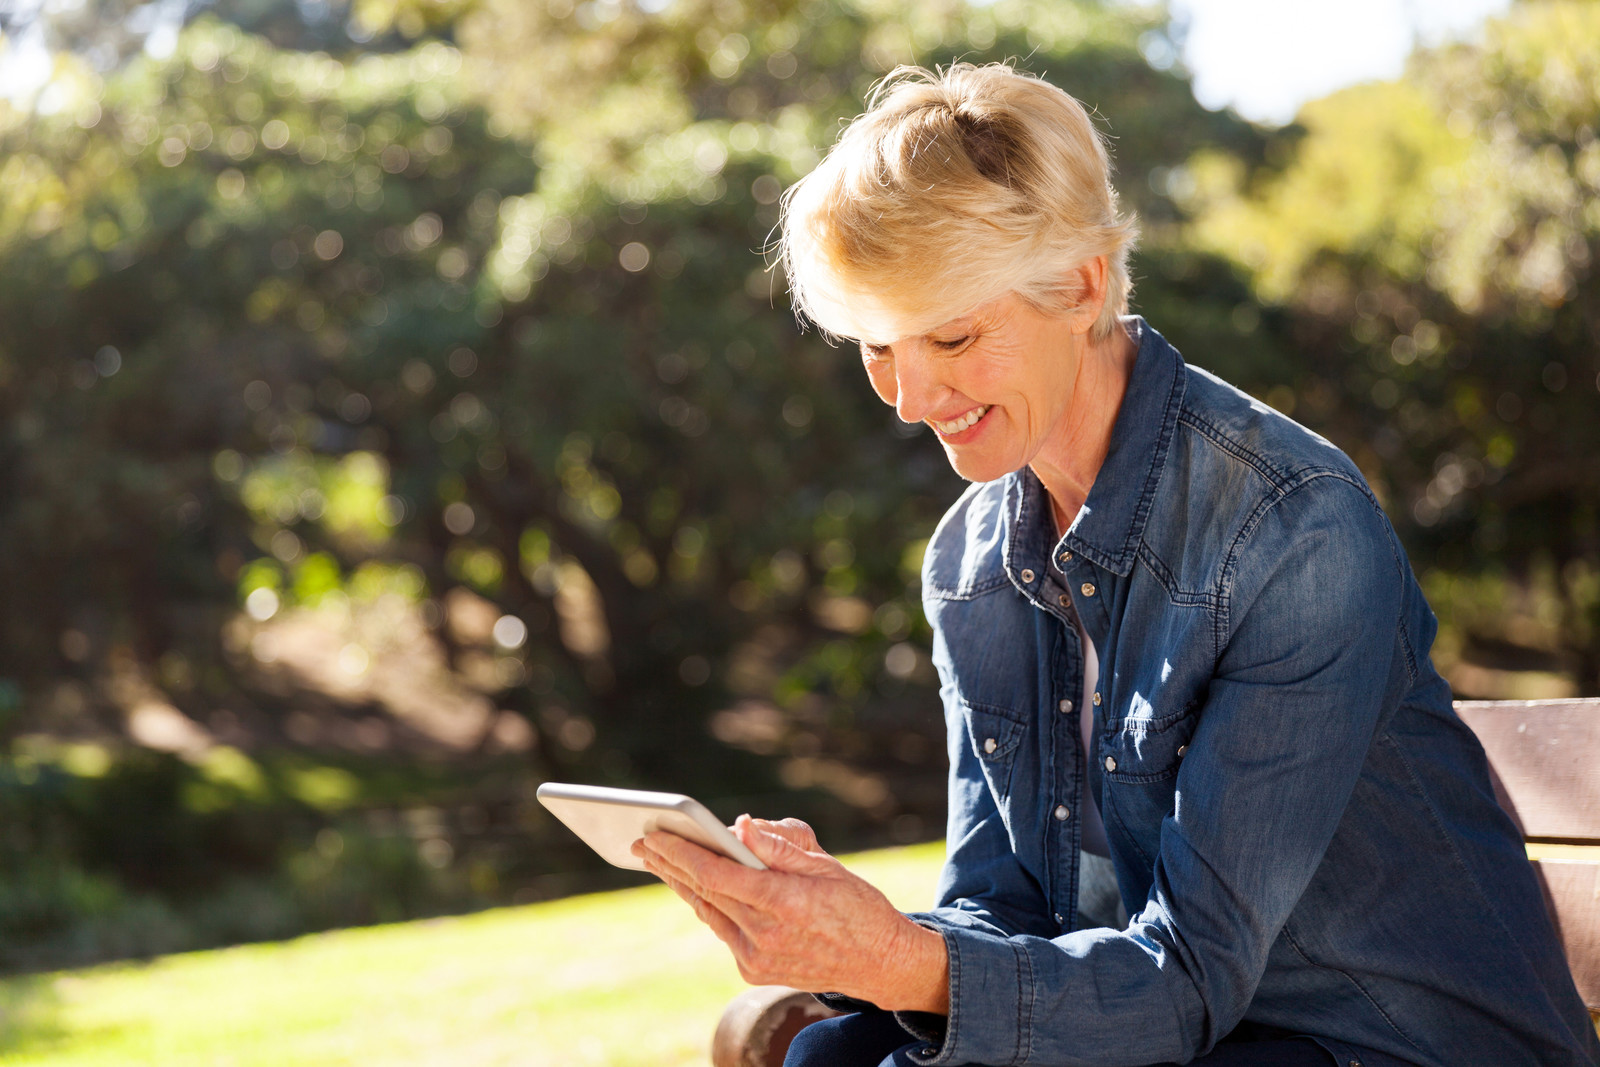 Blonde senior woman sitting on park bench looking at her phone smiling trees in the background.  No other people around